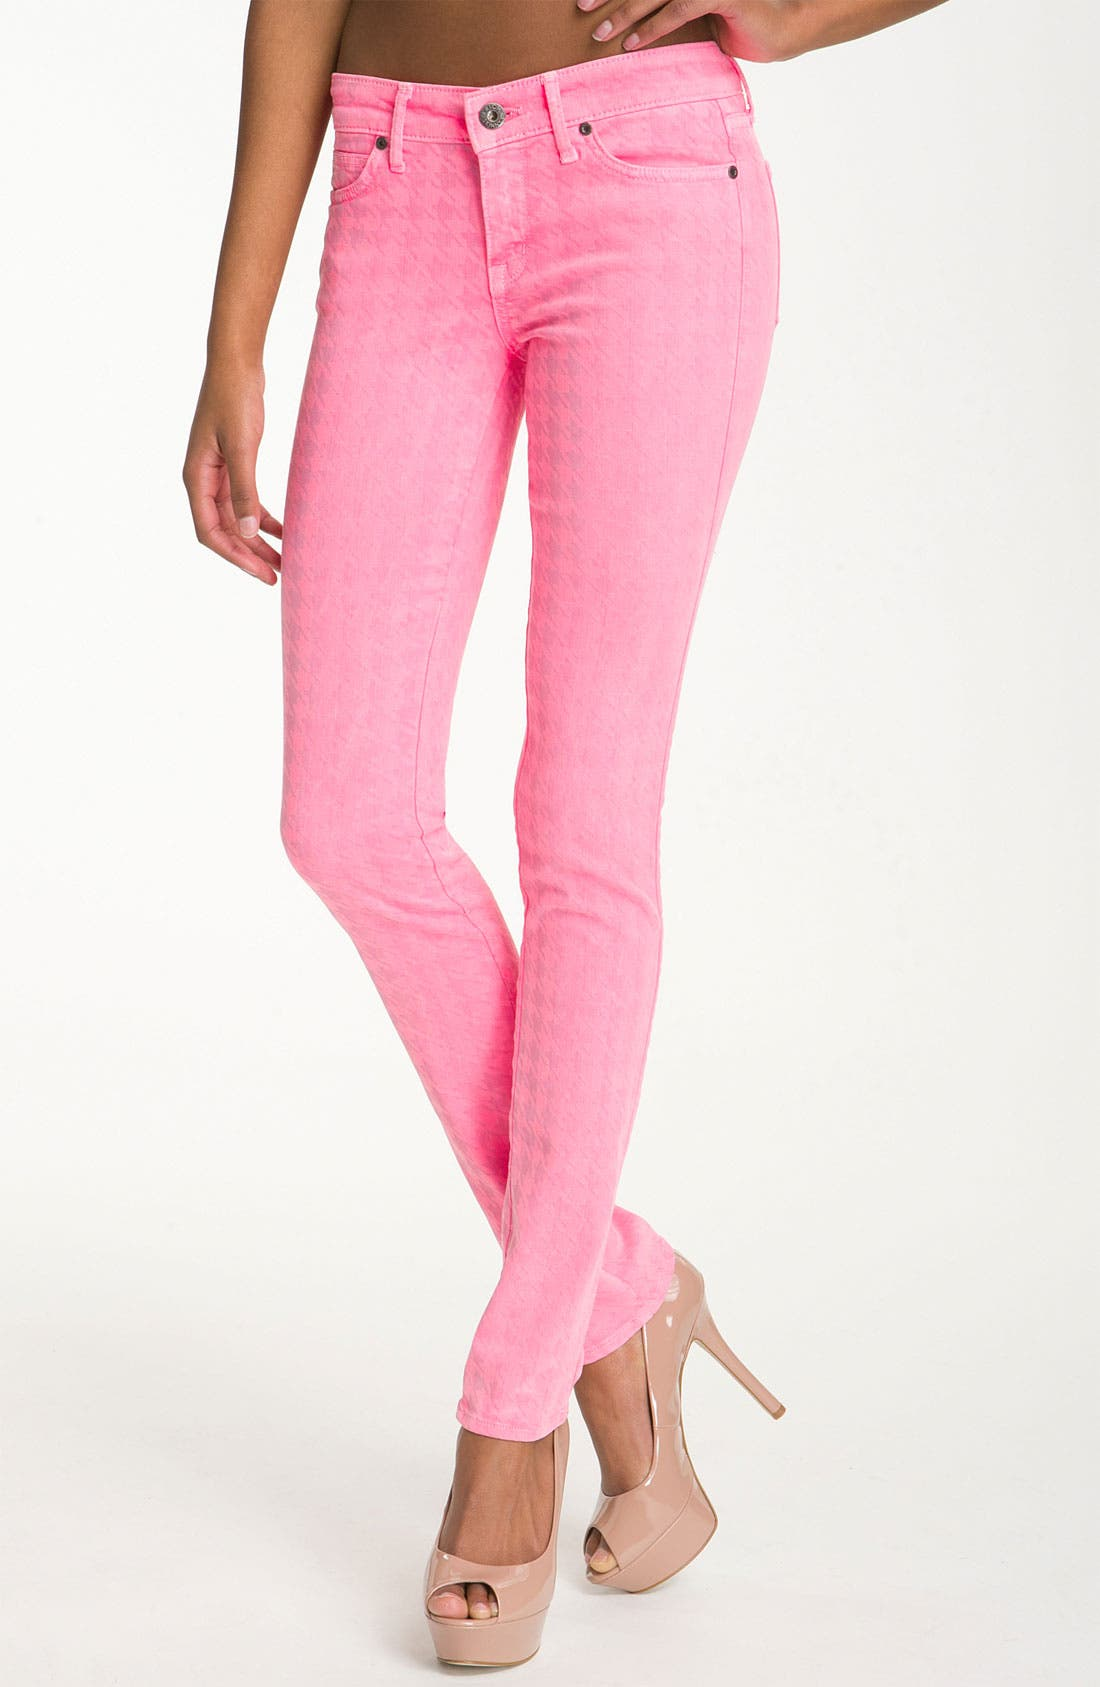 Main Image - Rich & Skinny 'Legacy' Houndstooth Print Skinny Jeans (Neon Pink)